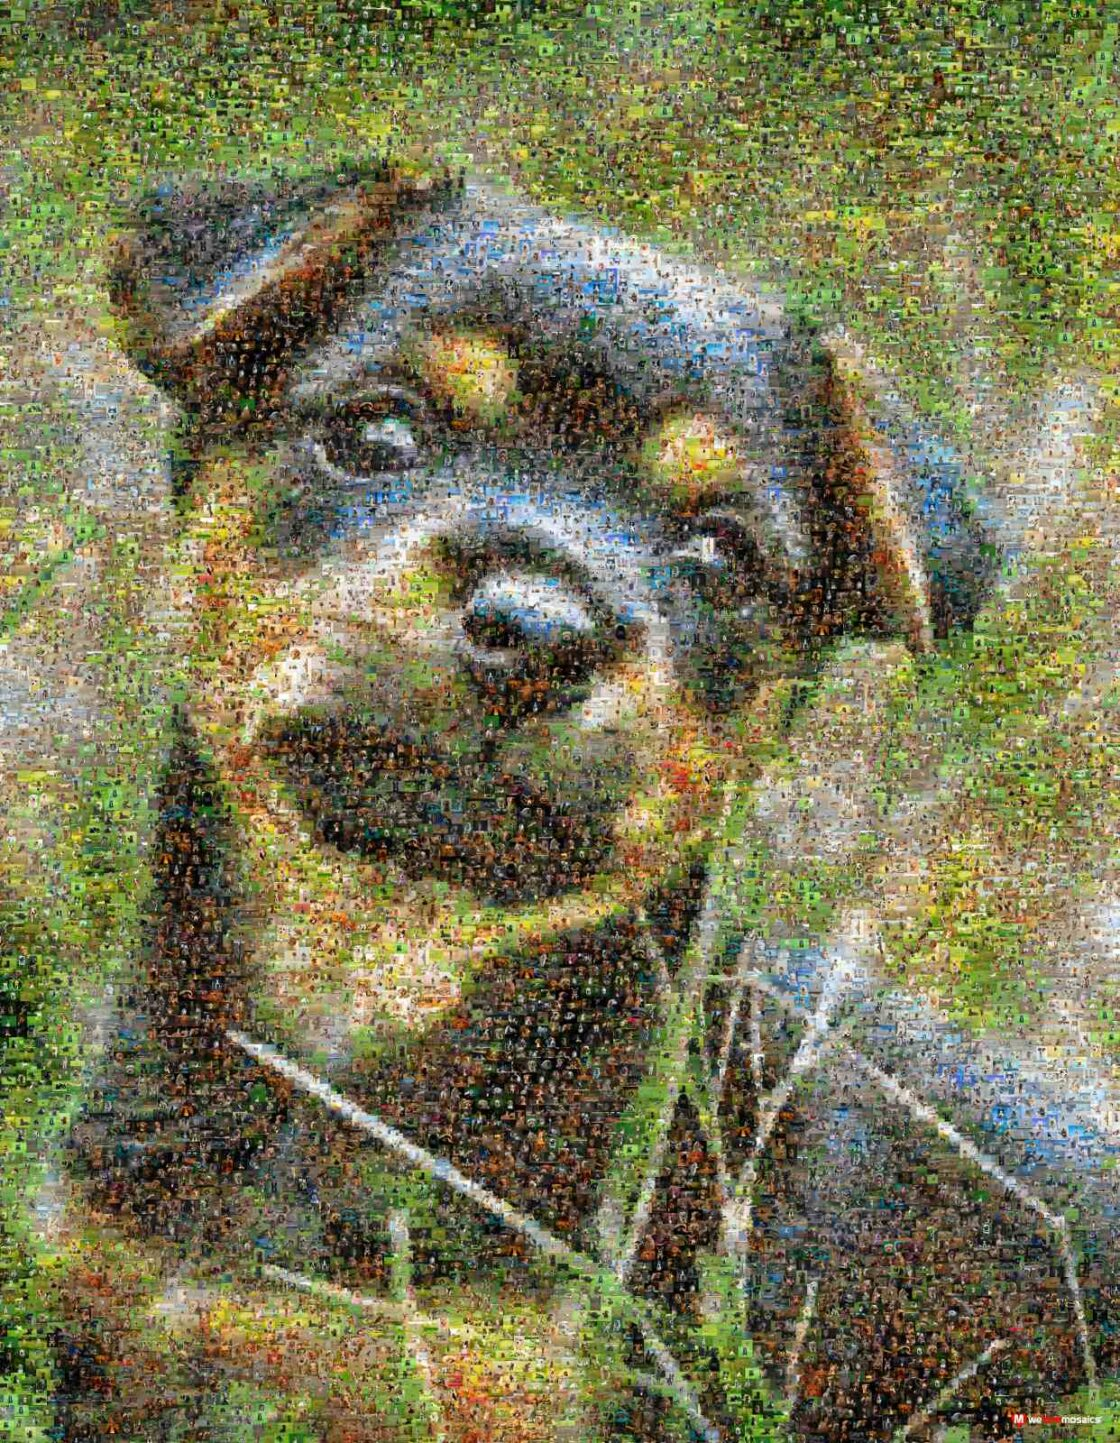 We just couldn't resist design a mosaic masterpiece around this too cute puppy!